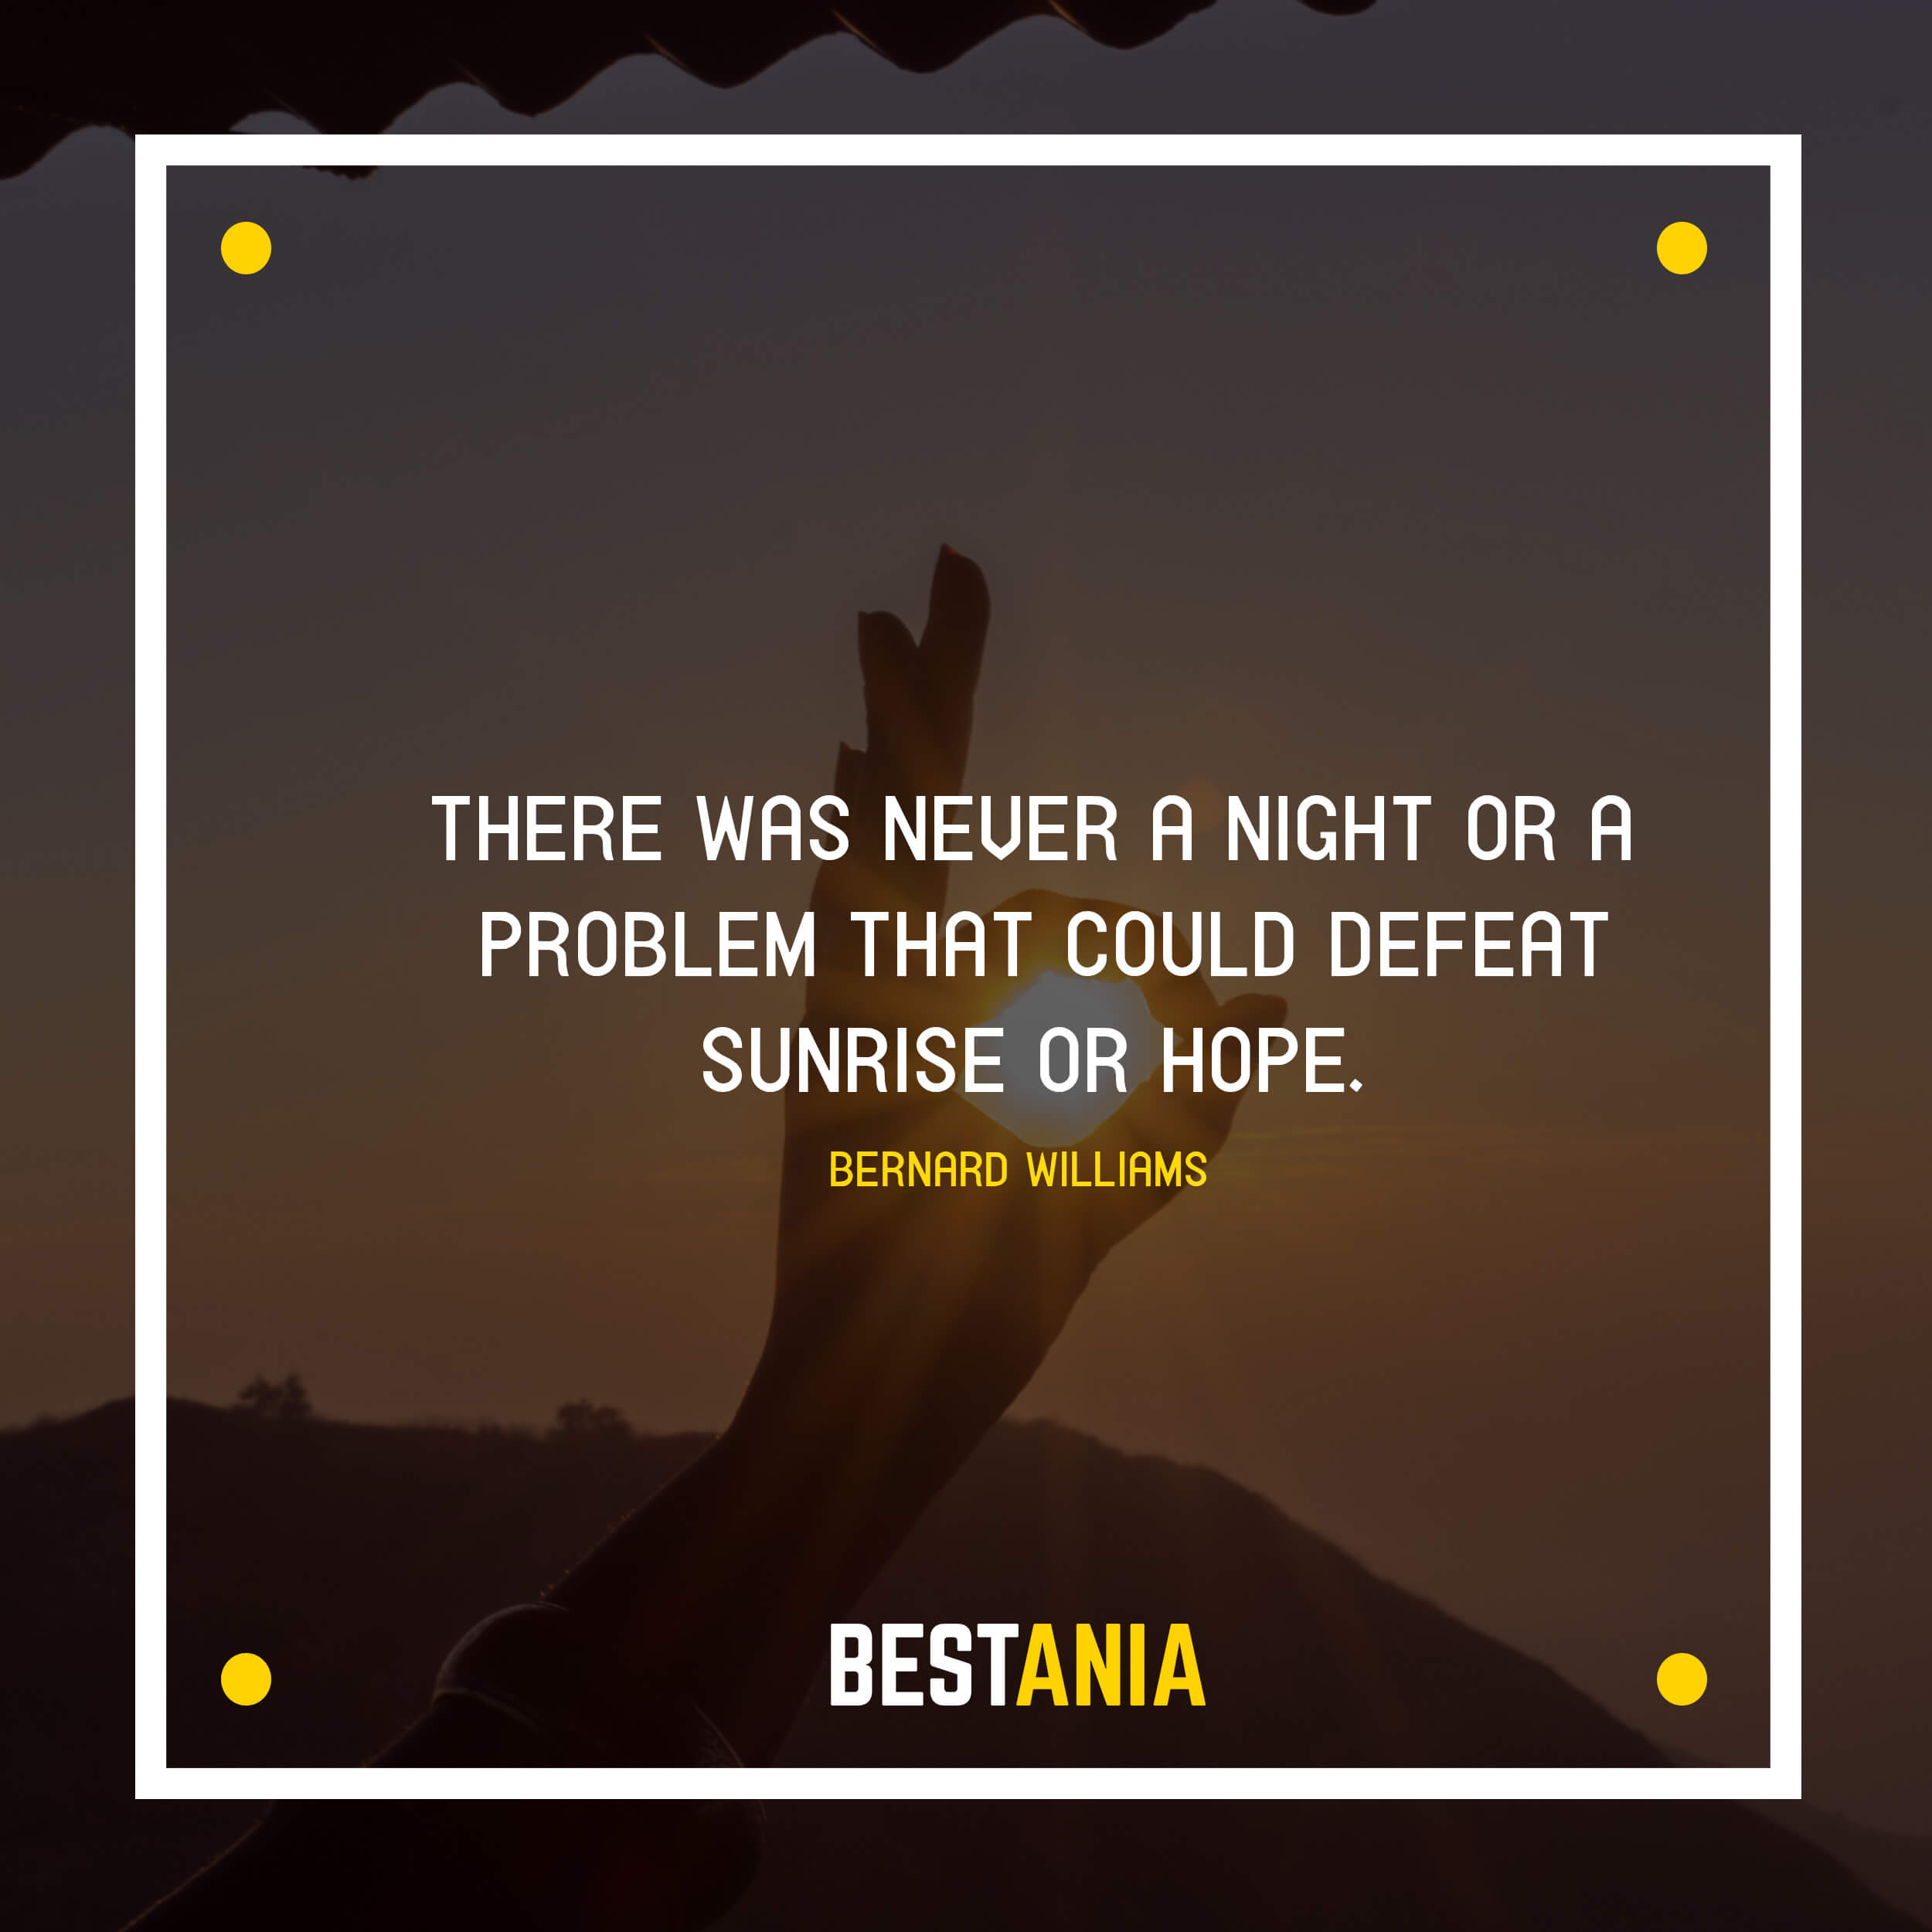 """""""THERE WAS NEVER A NIGHT OR A PROBLEM THAT COULD DEFEAT SUNRISE OR HOPE."""" BERNARD WILLIAMS"""